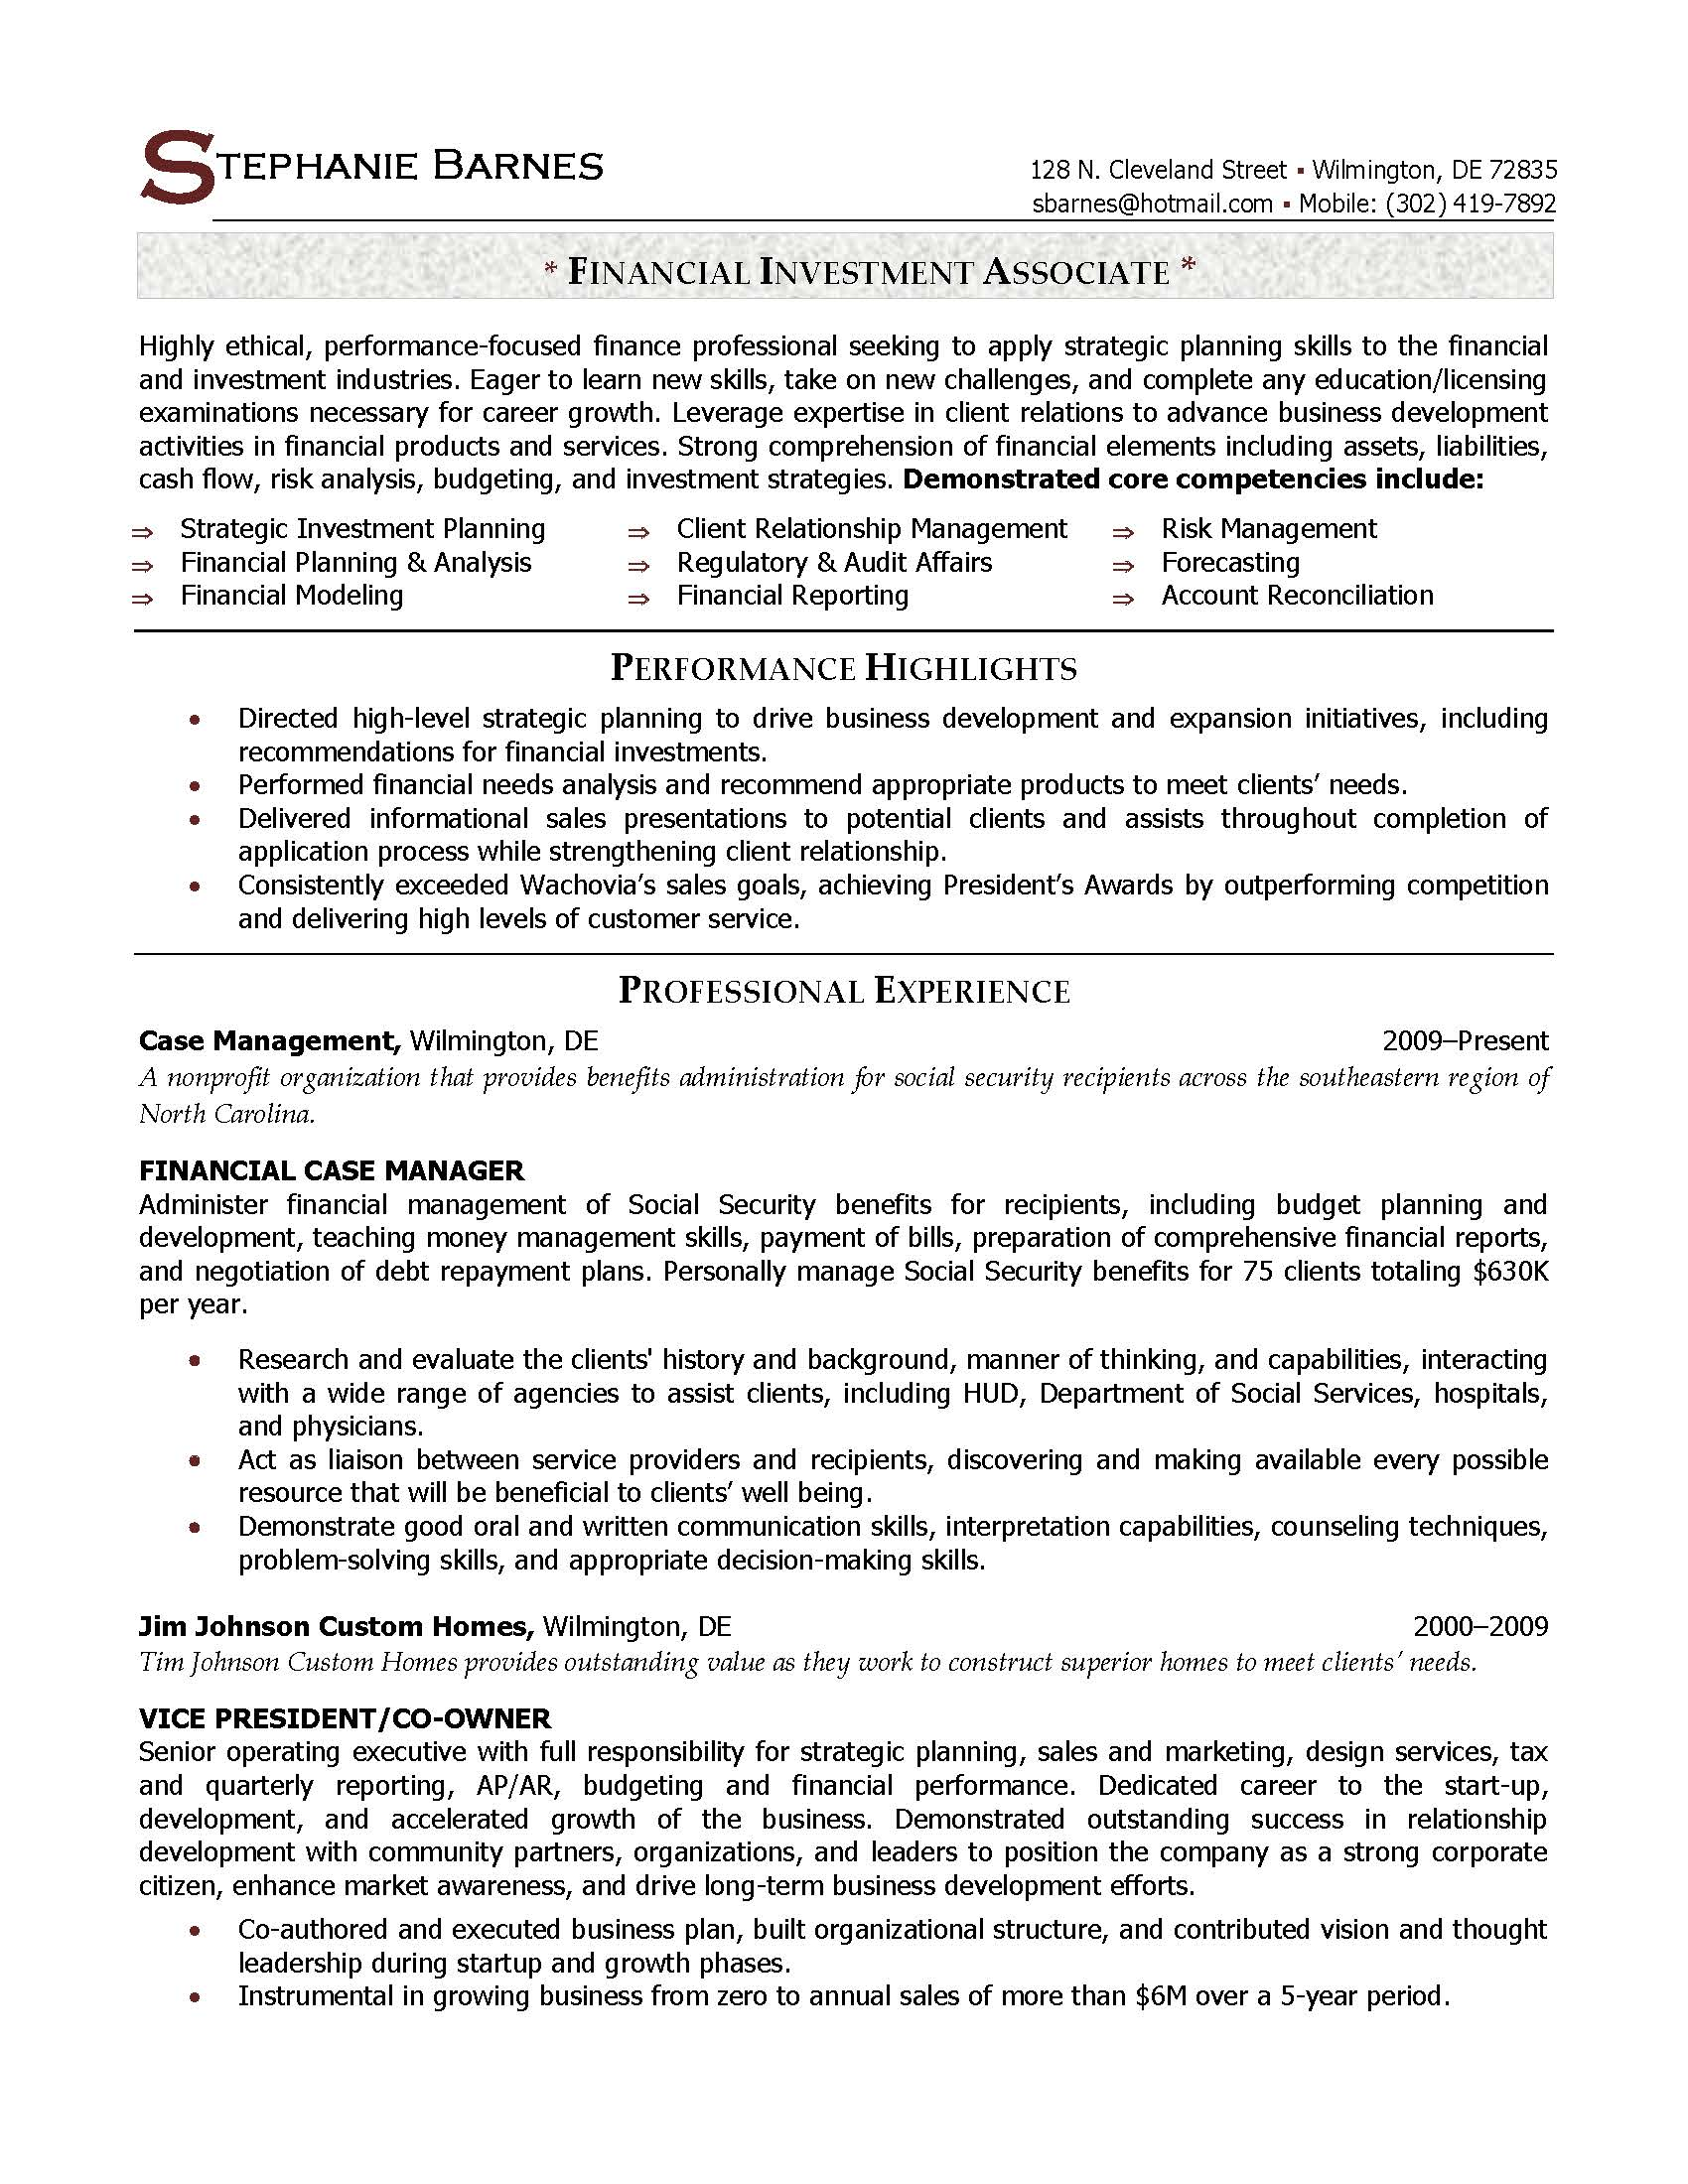 resume samples elite resume writing financial investment associate resume sample provided by elite resume writing services